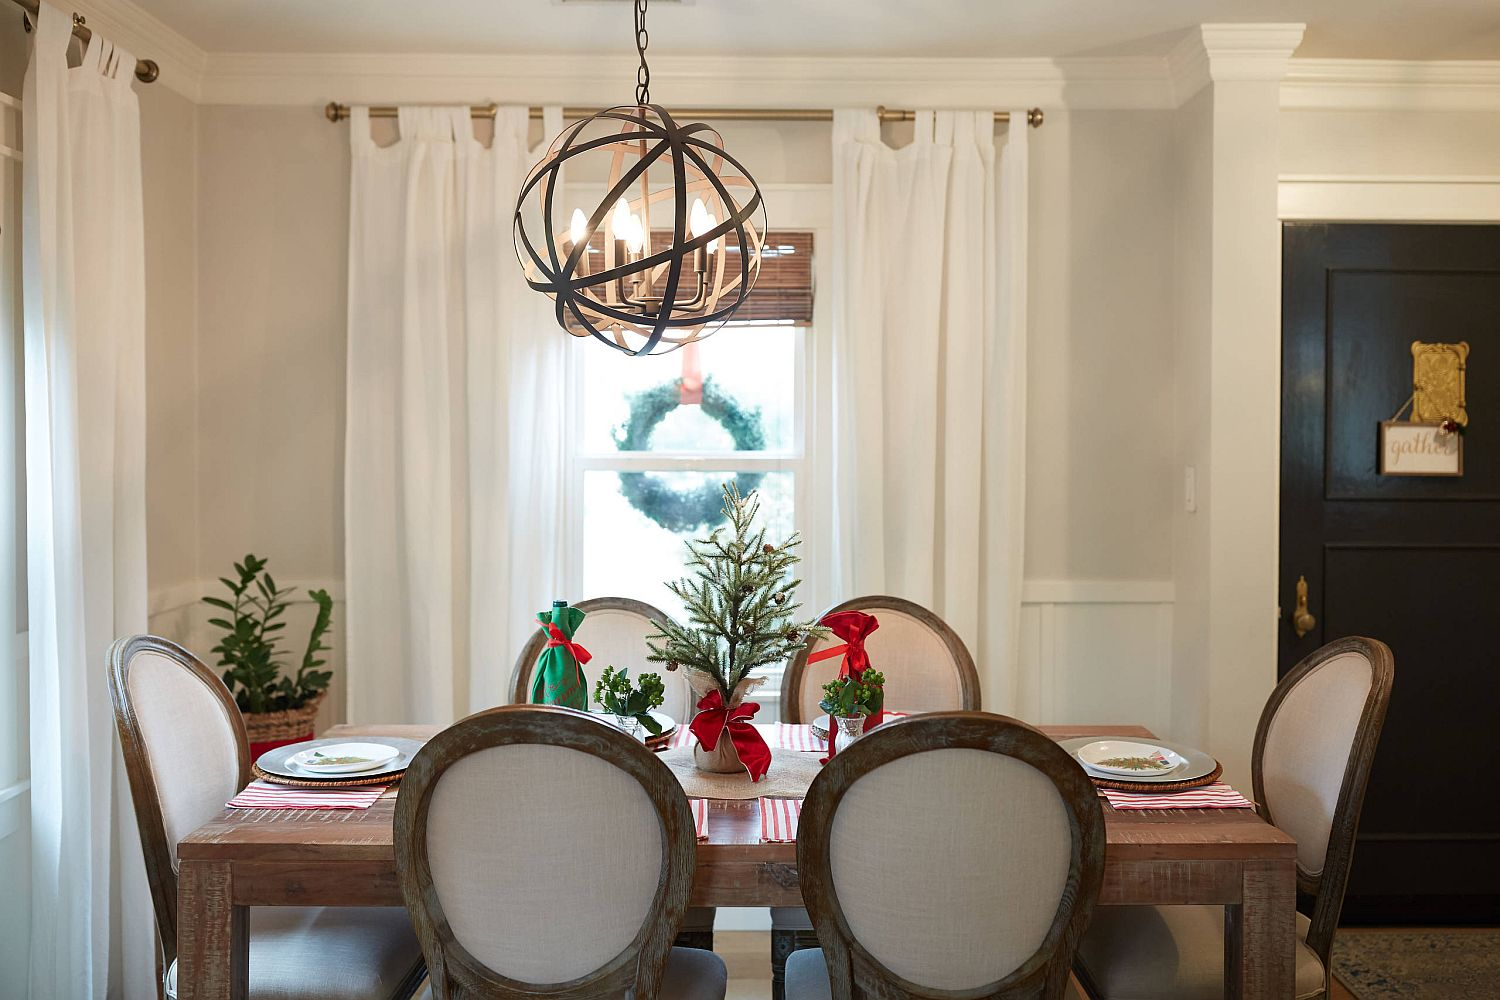 Wreath outside the window and dining table decorations bring Holiday cheer to this dining room in San Francisco